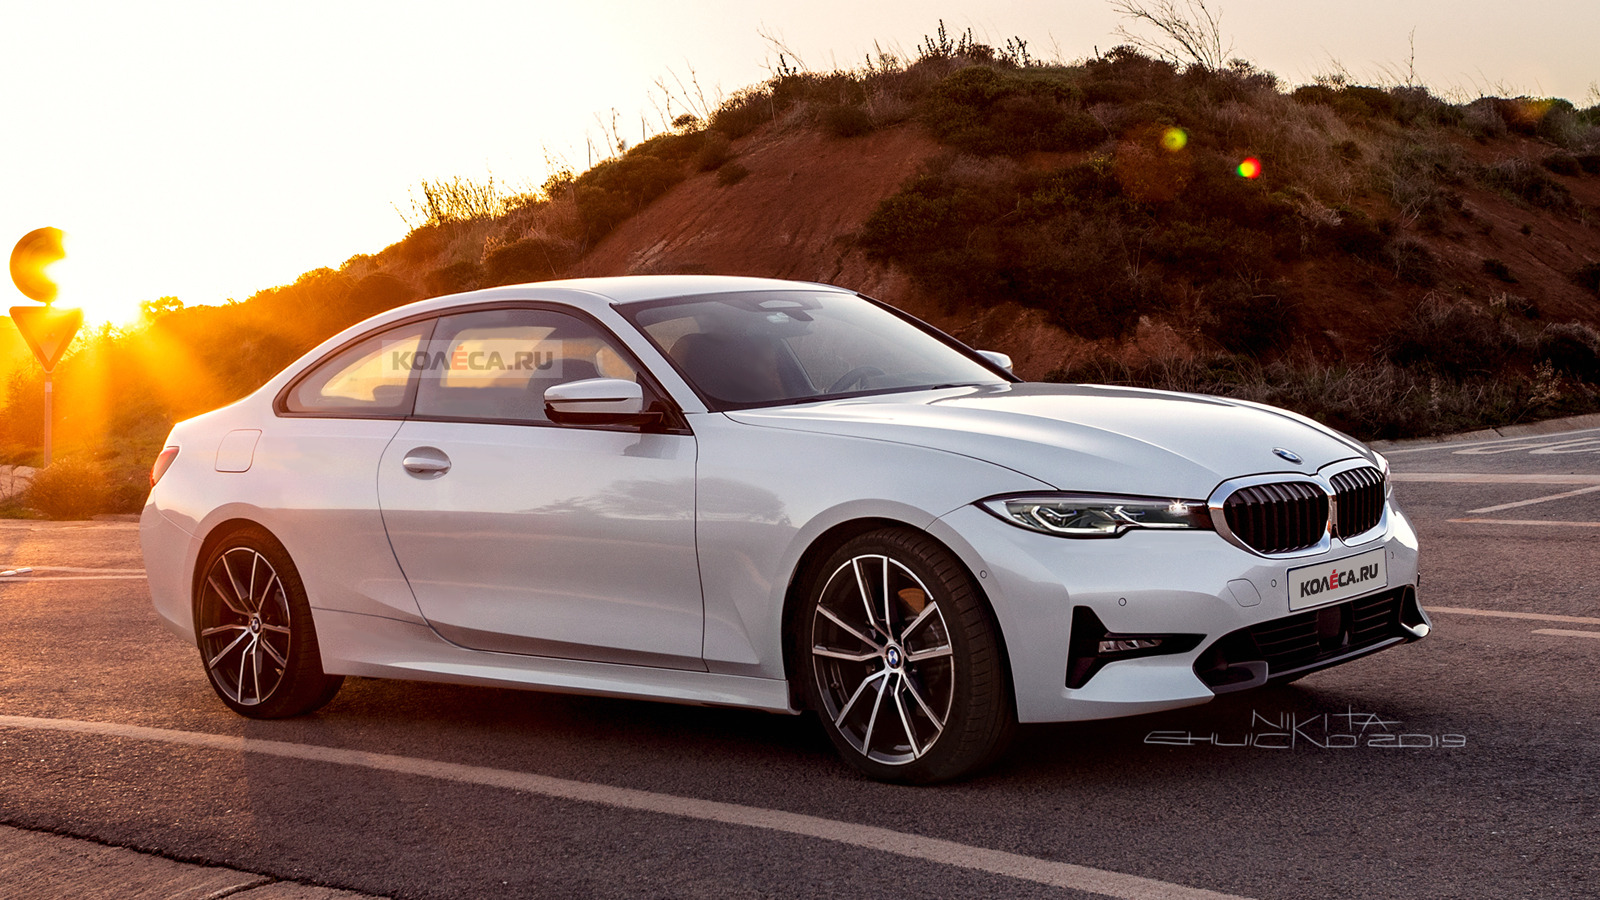 BMW 4 Series Render looks like a 3 Series mixed with an 8 Series